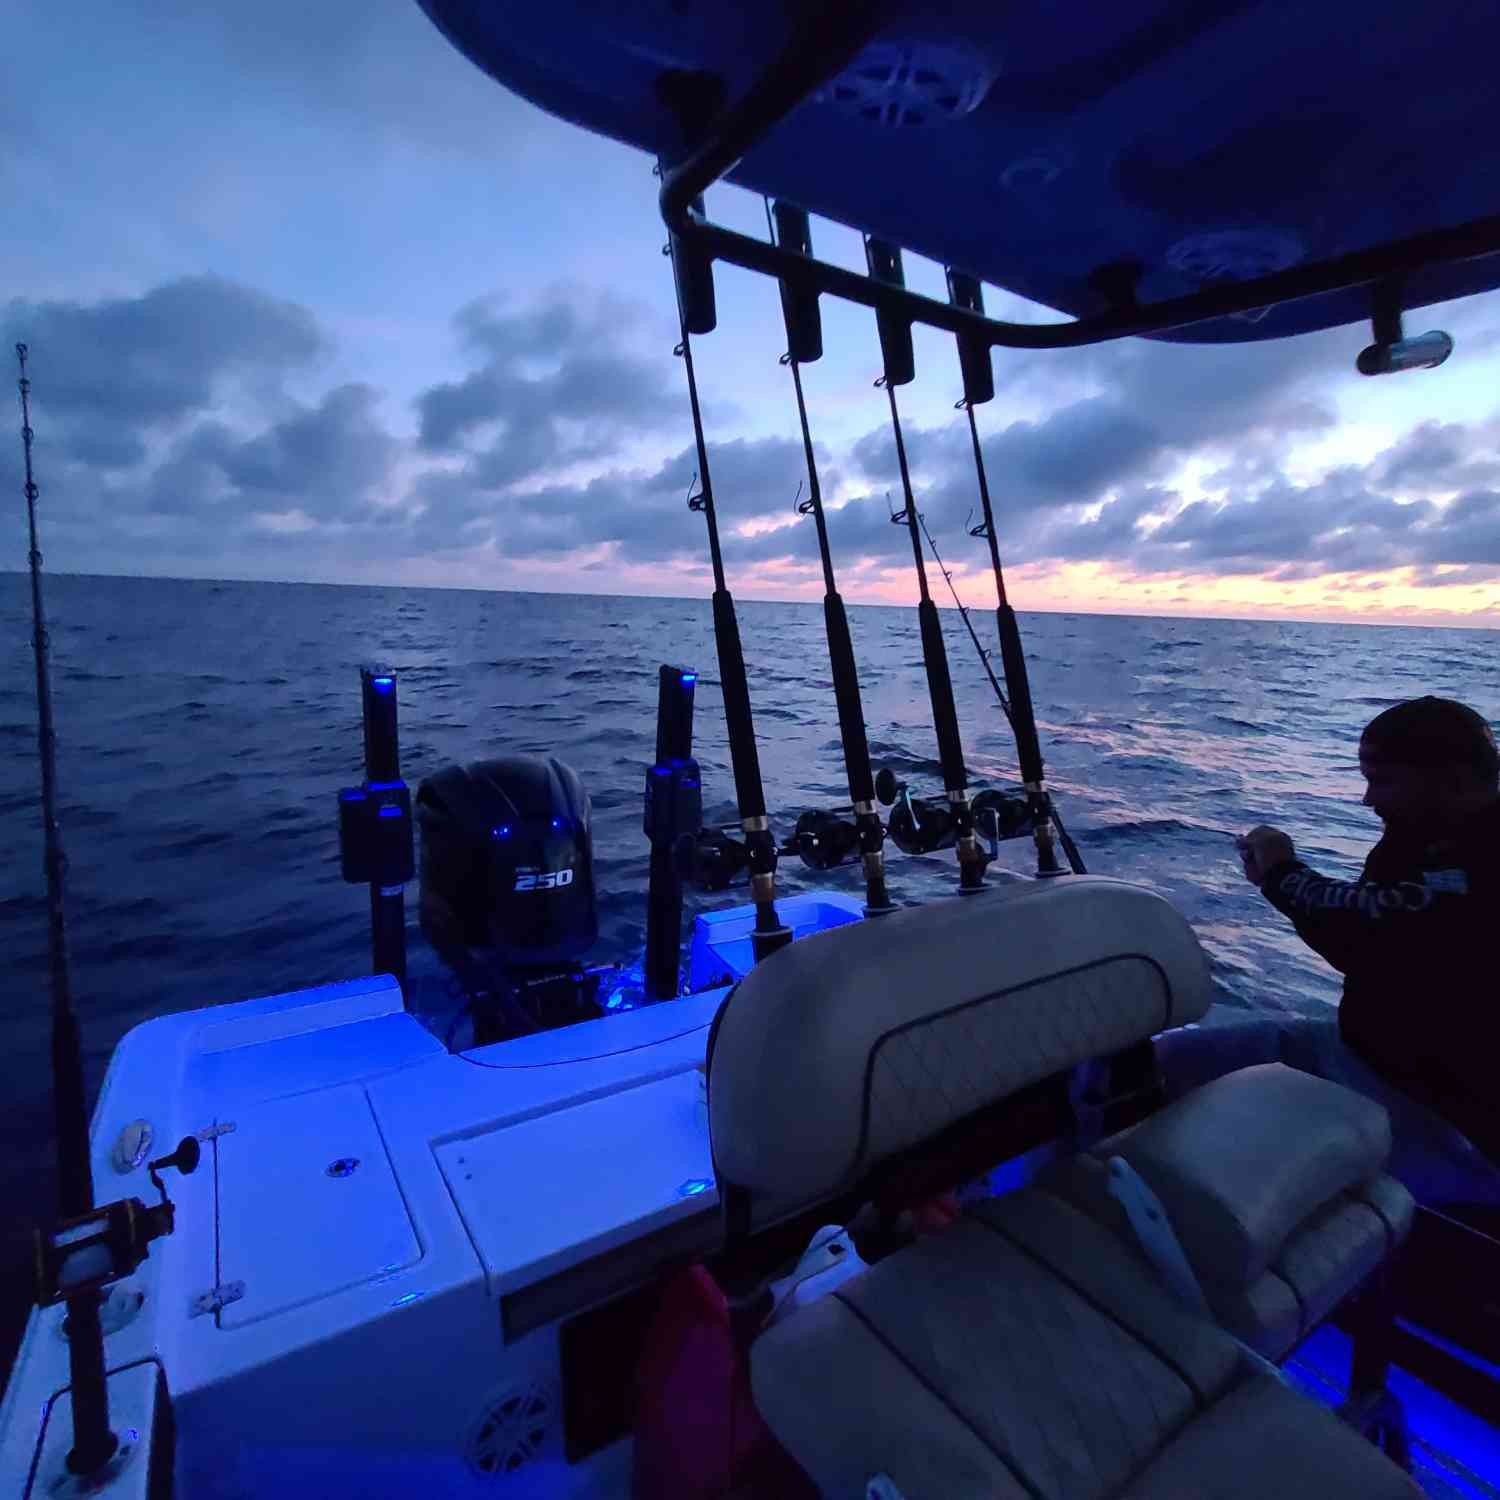 Title: 50 miles offshore - On board their Sportsman Masters 227 Bay Boat - Location: East of the Hot Dog. Participating in the Photo Contest #SportsmanAugust2020